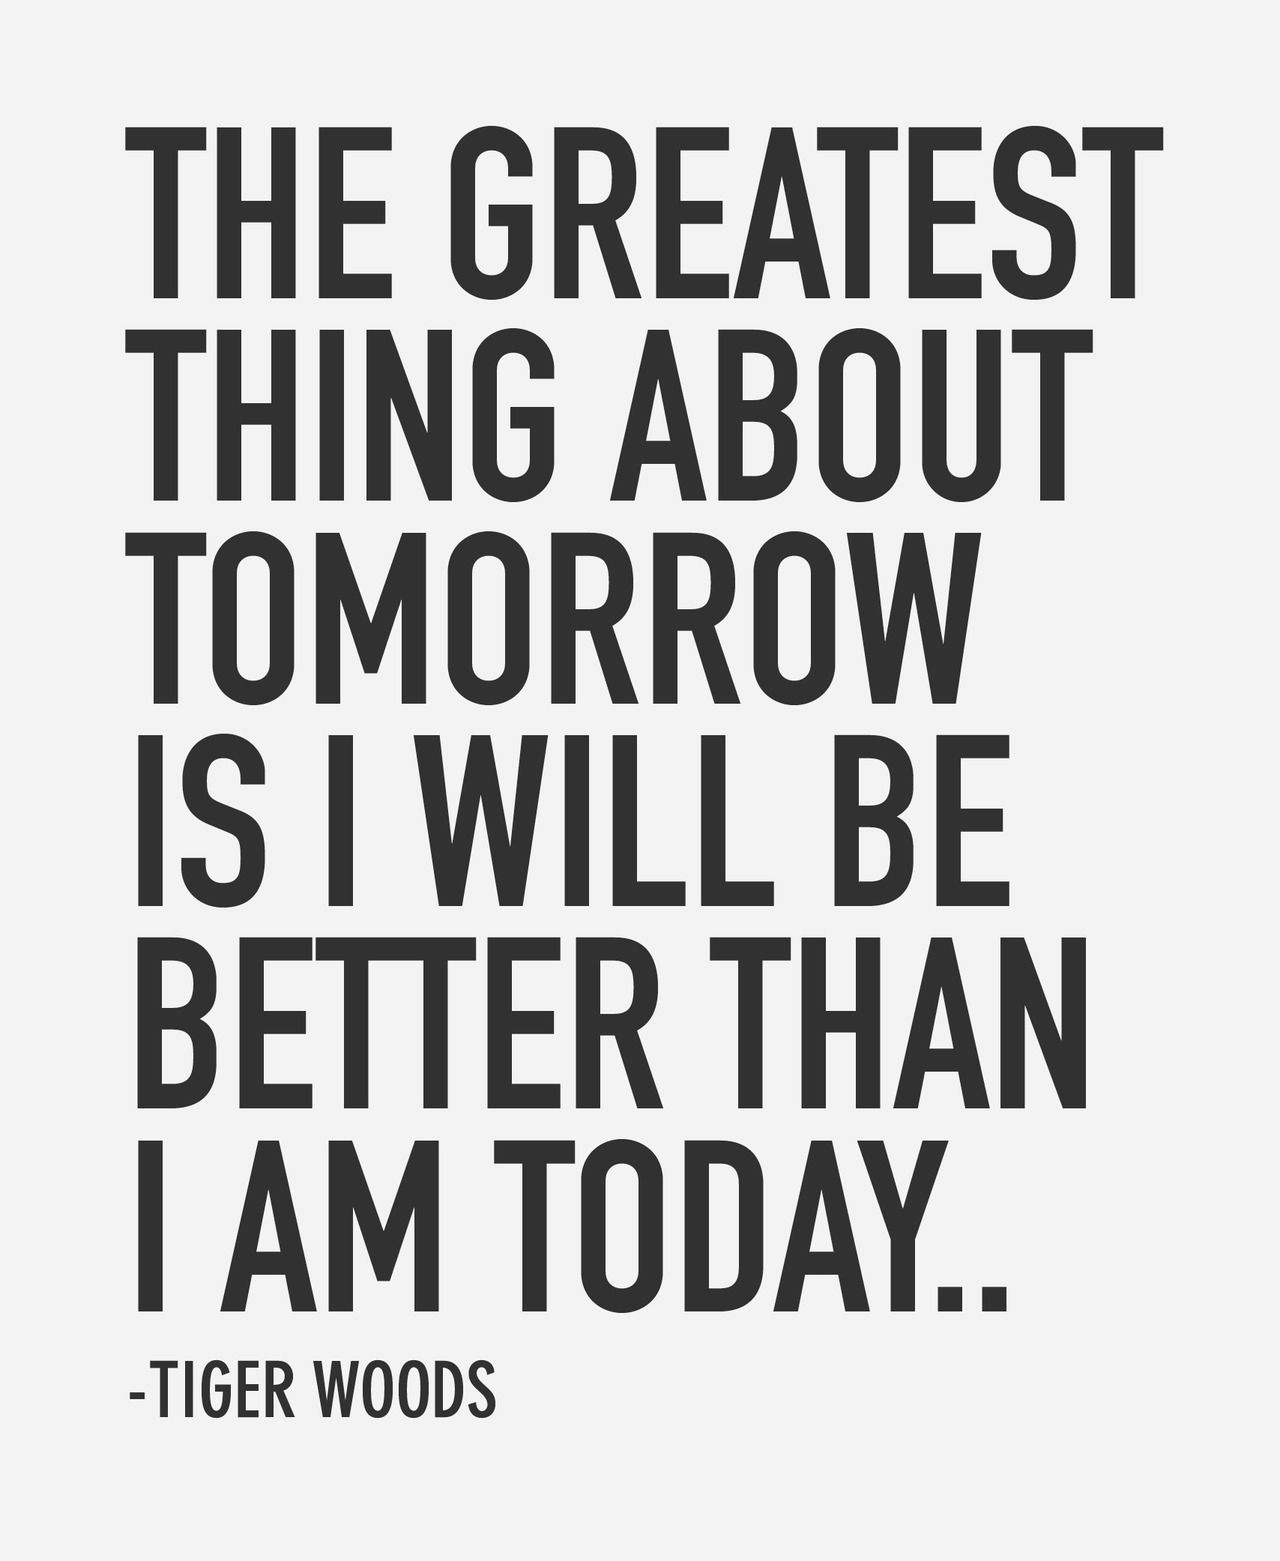 The Greatest Thing About Tomorrow Is I Will Be Better Than I Am